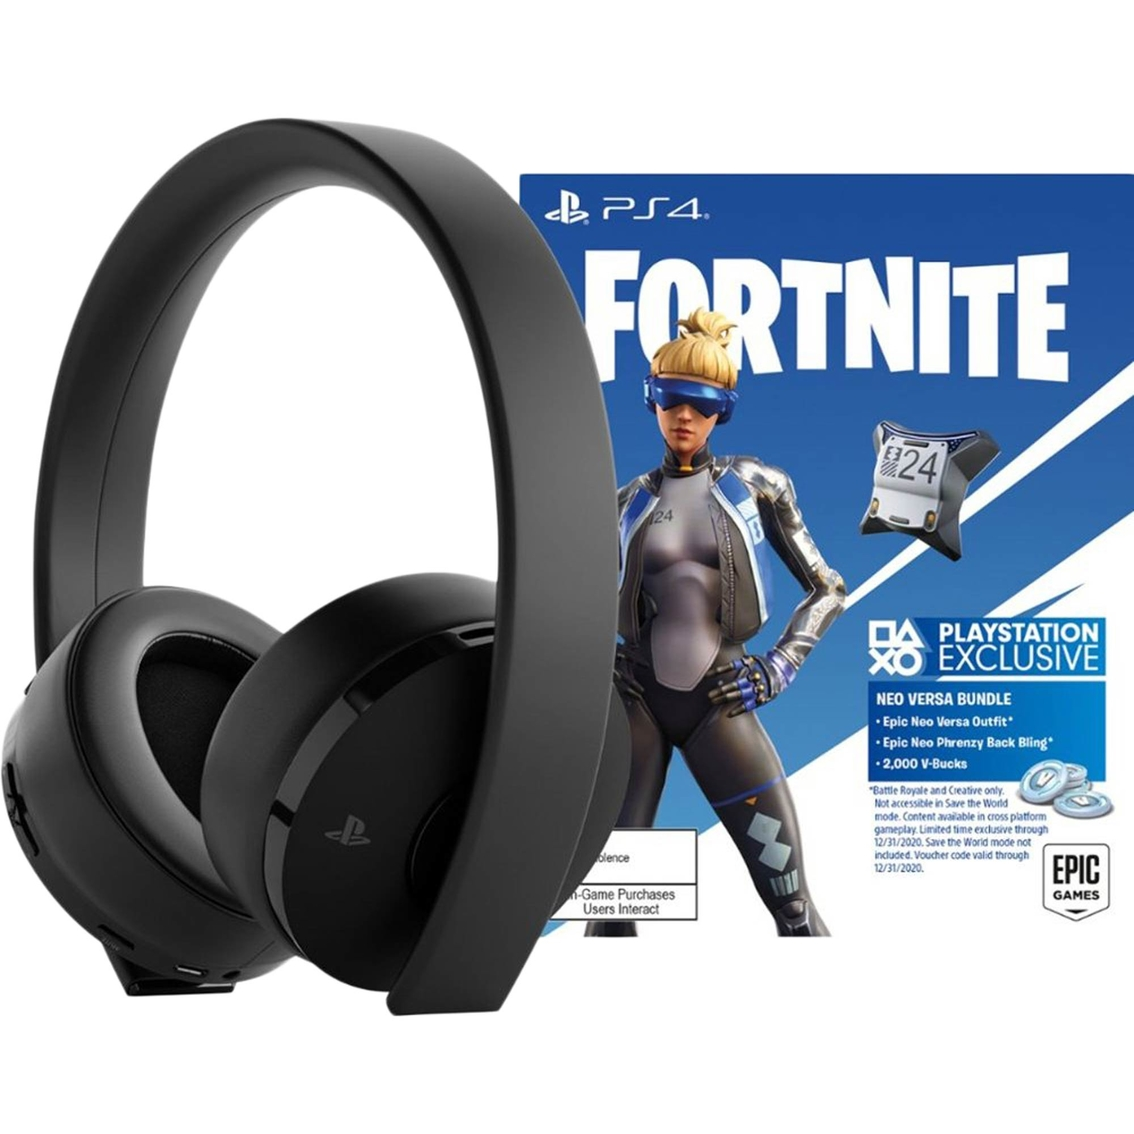 Sony Fortnite Neo Versa Gold Wireless Headset Bundle Pc Gaming Accessories Home Office School Shop The Exchange